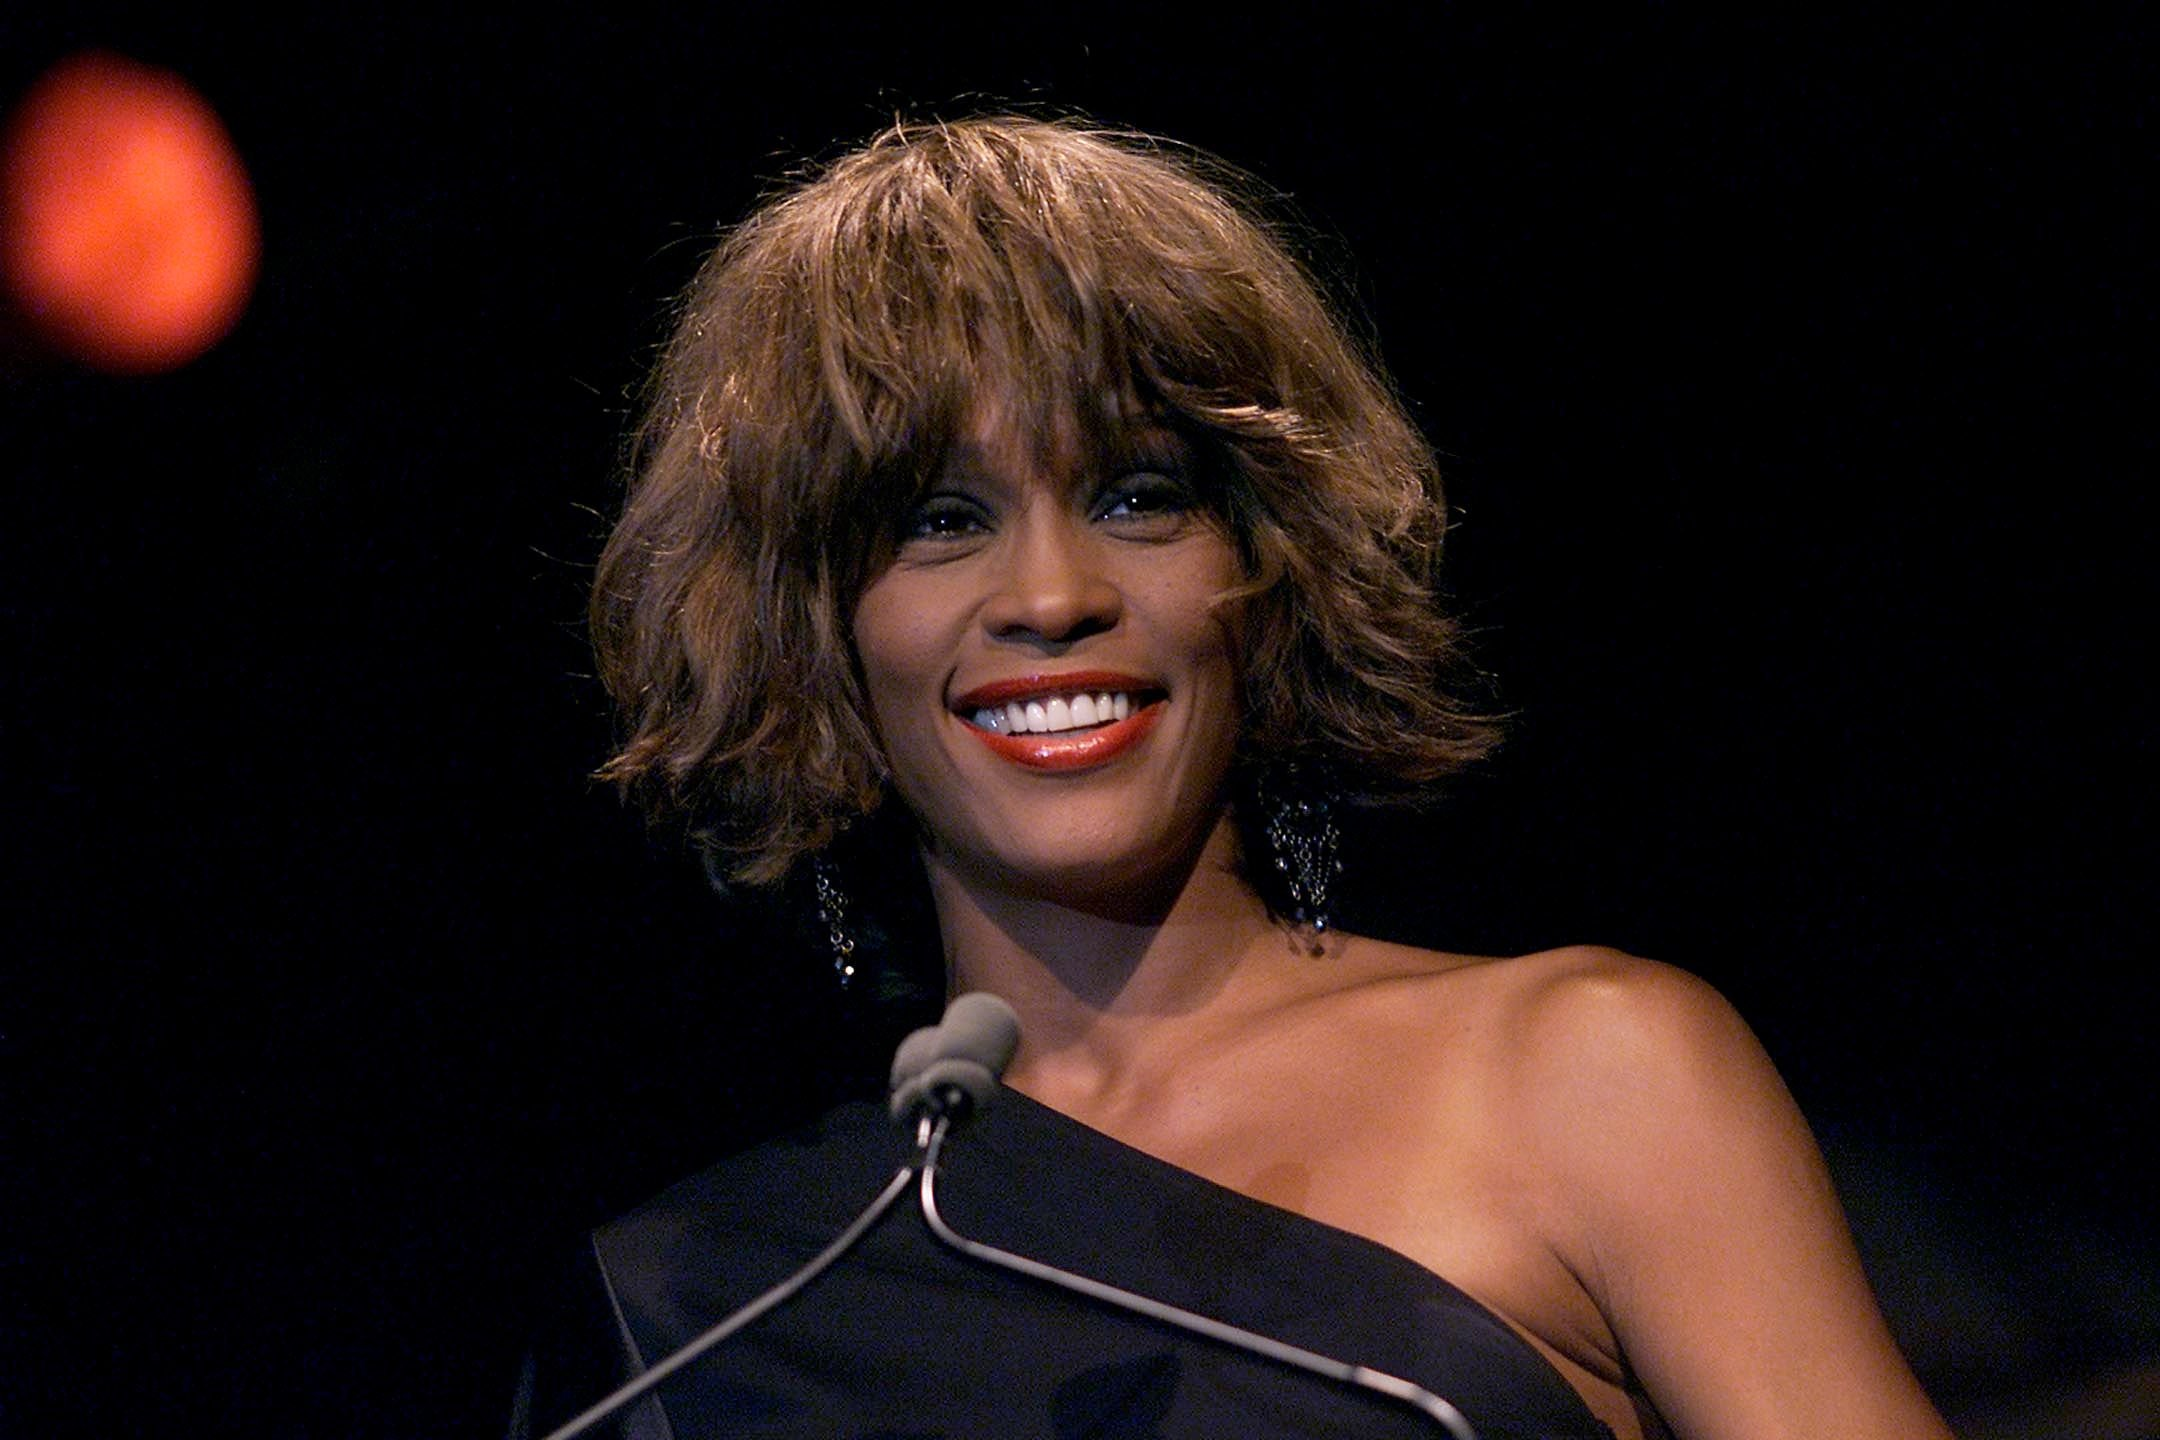 Whitney Houston at the Songwriters Hall of Fame 32nd Annual Awards / Getty Images